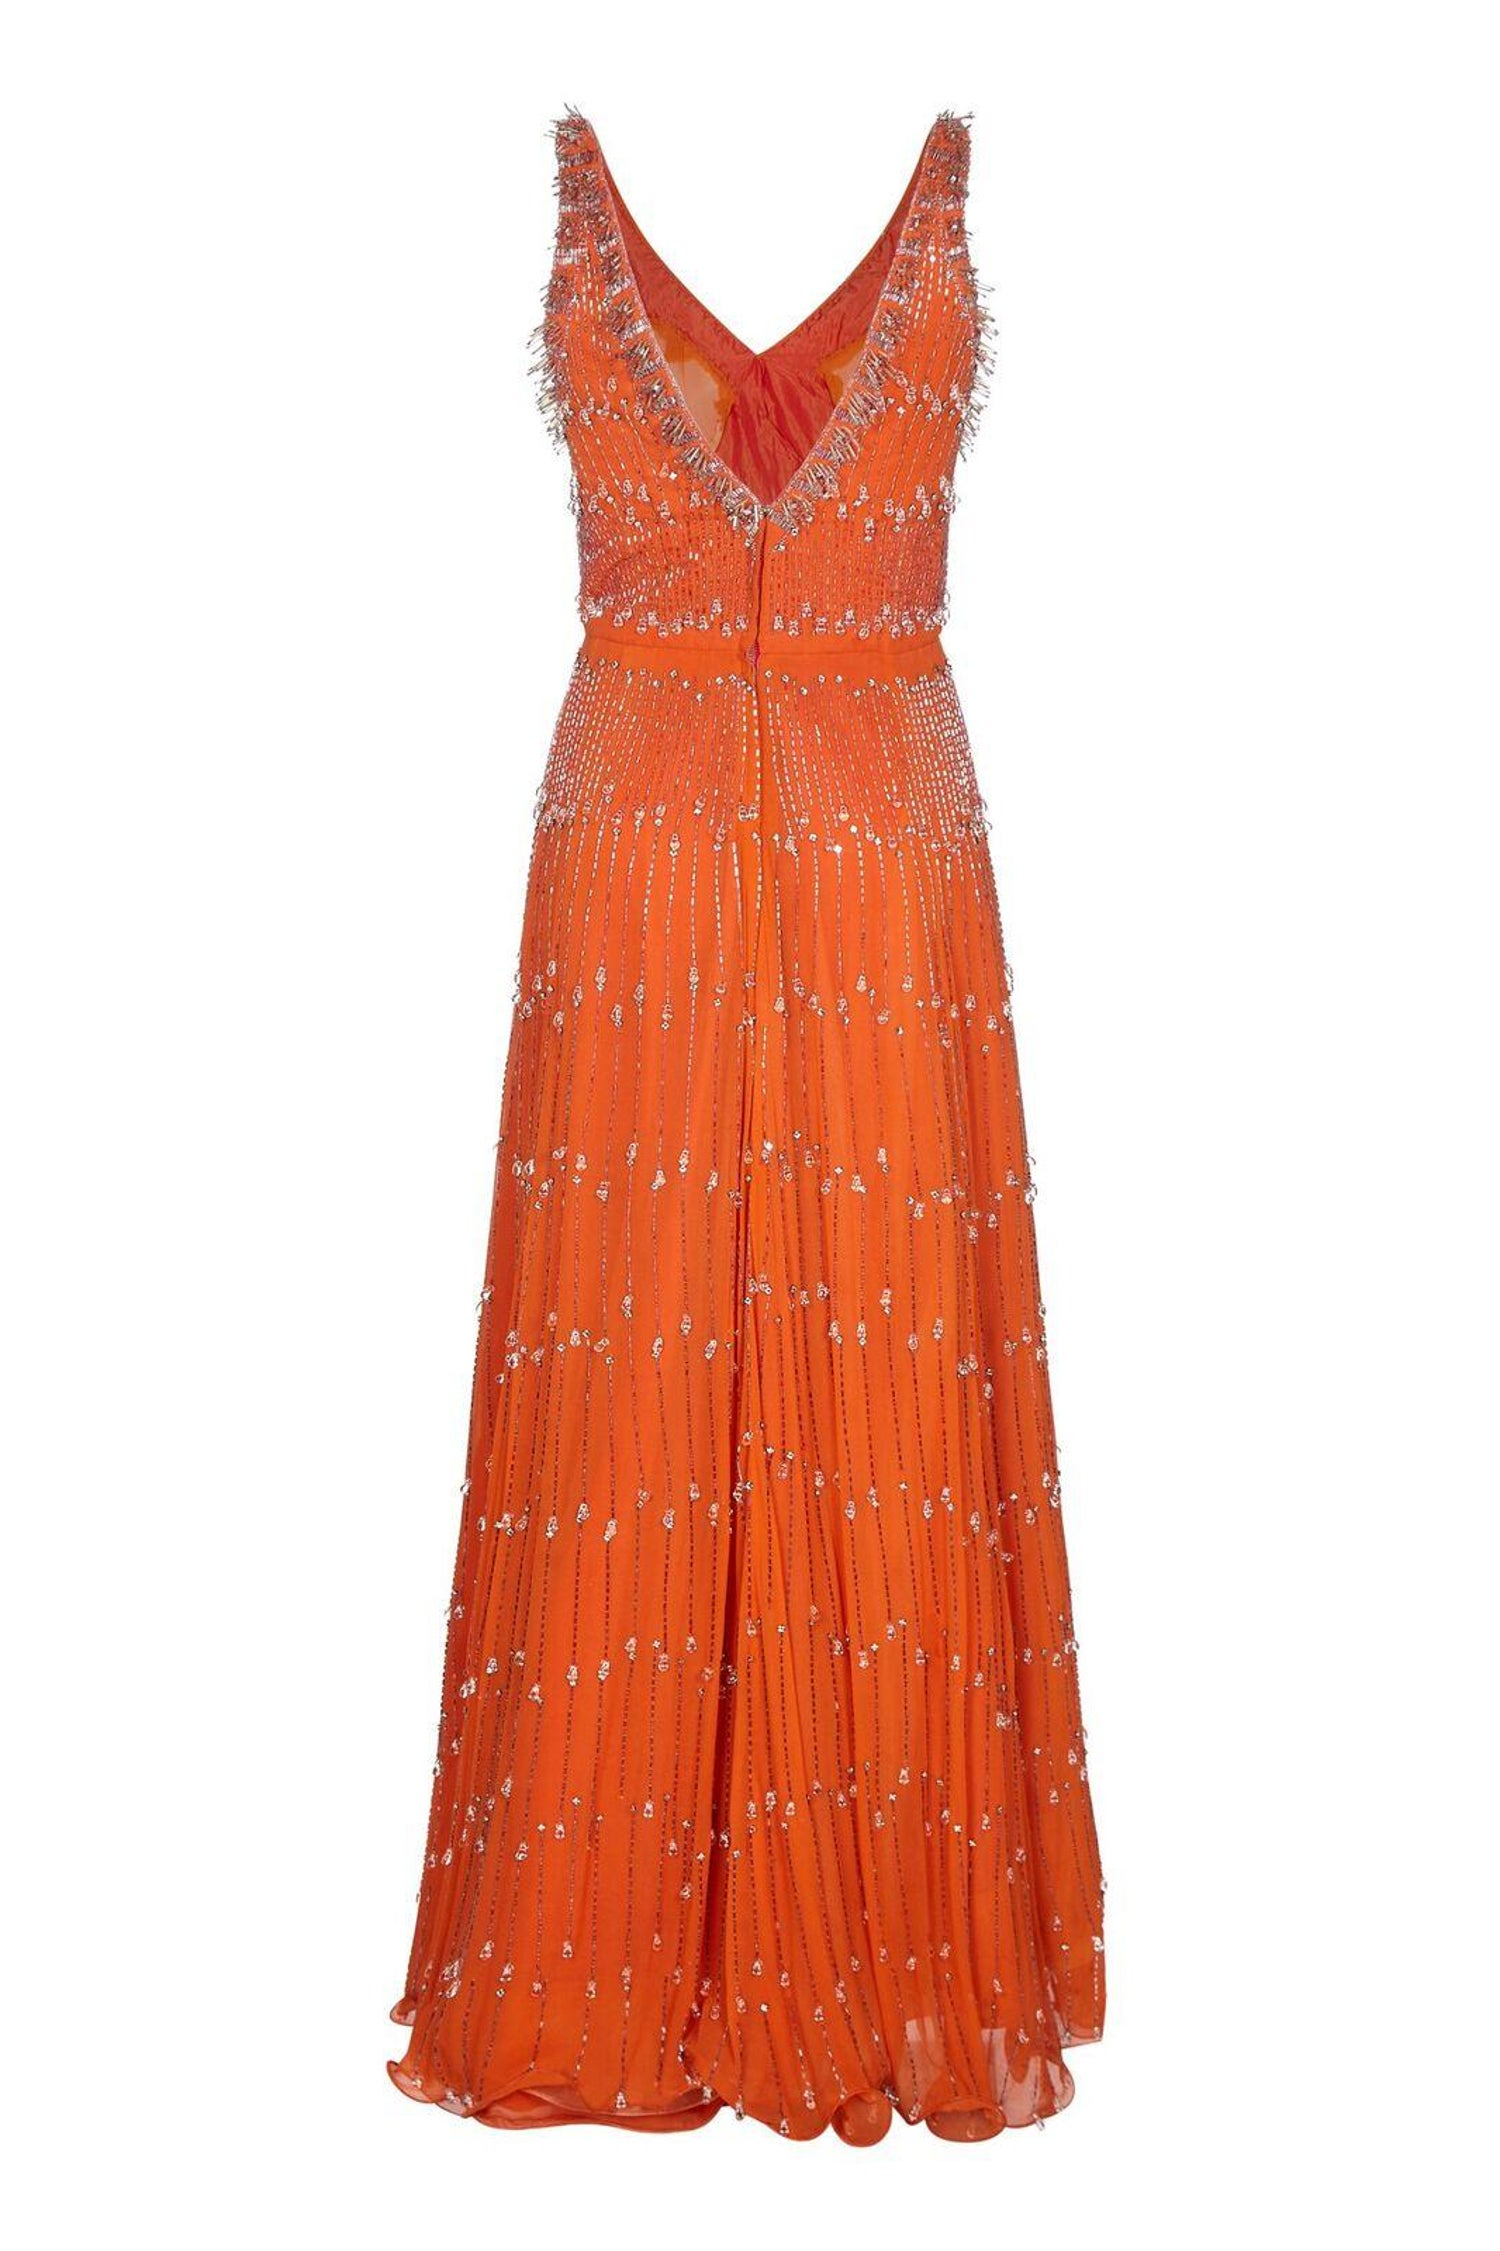 42e1e1c61ba Couture 1960s Burnt Orange Silk Chiffon Gown With Crystal Bead Embellishment  For Sale at 1stdibs